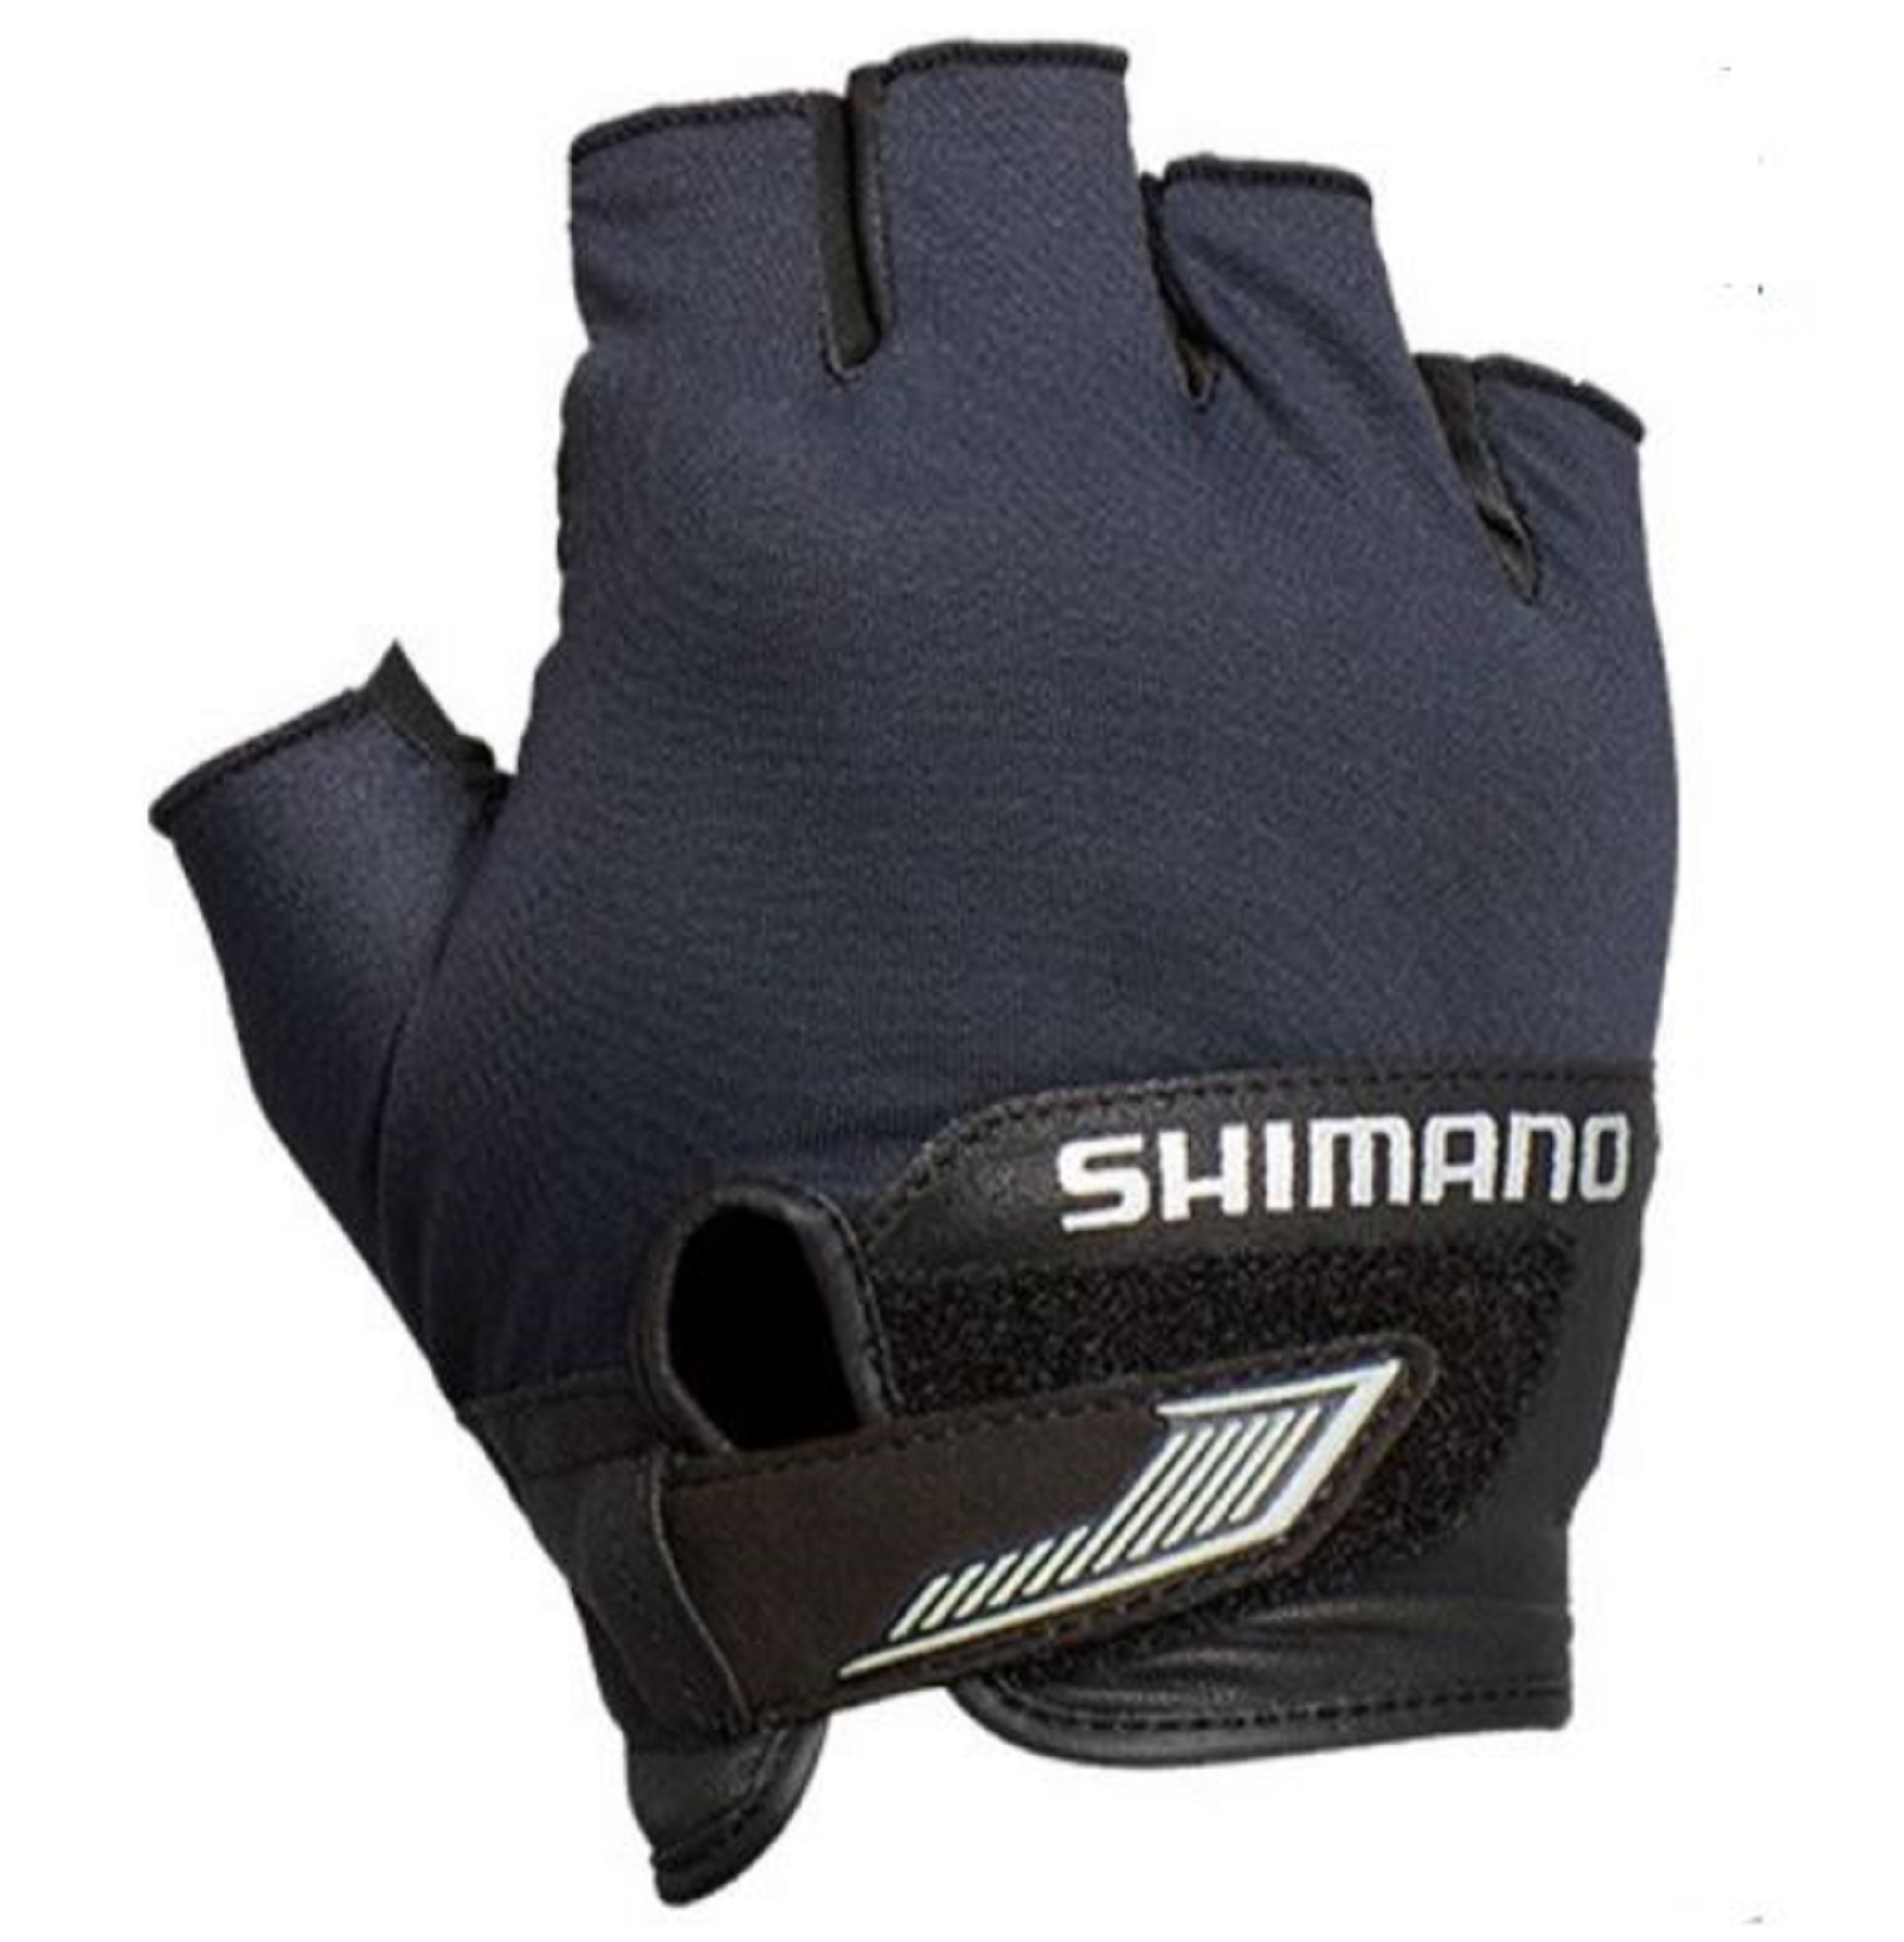 Shimano GL-022S Gloves 3D Casting High Grip 5 Fingerless Bk Size L 634108